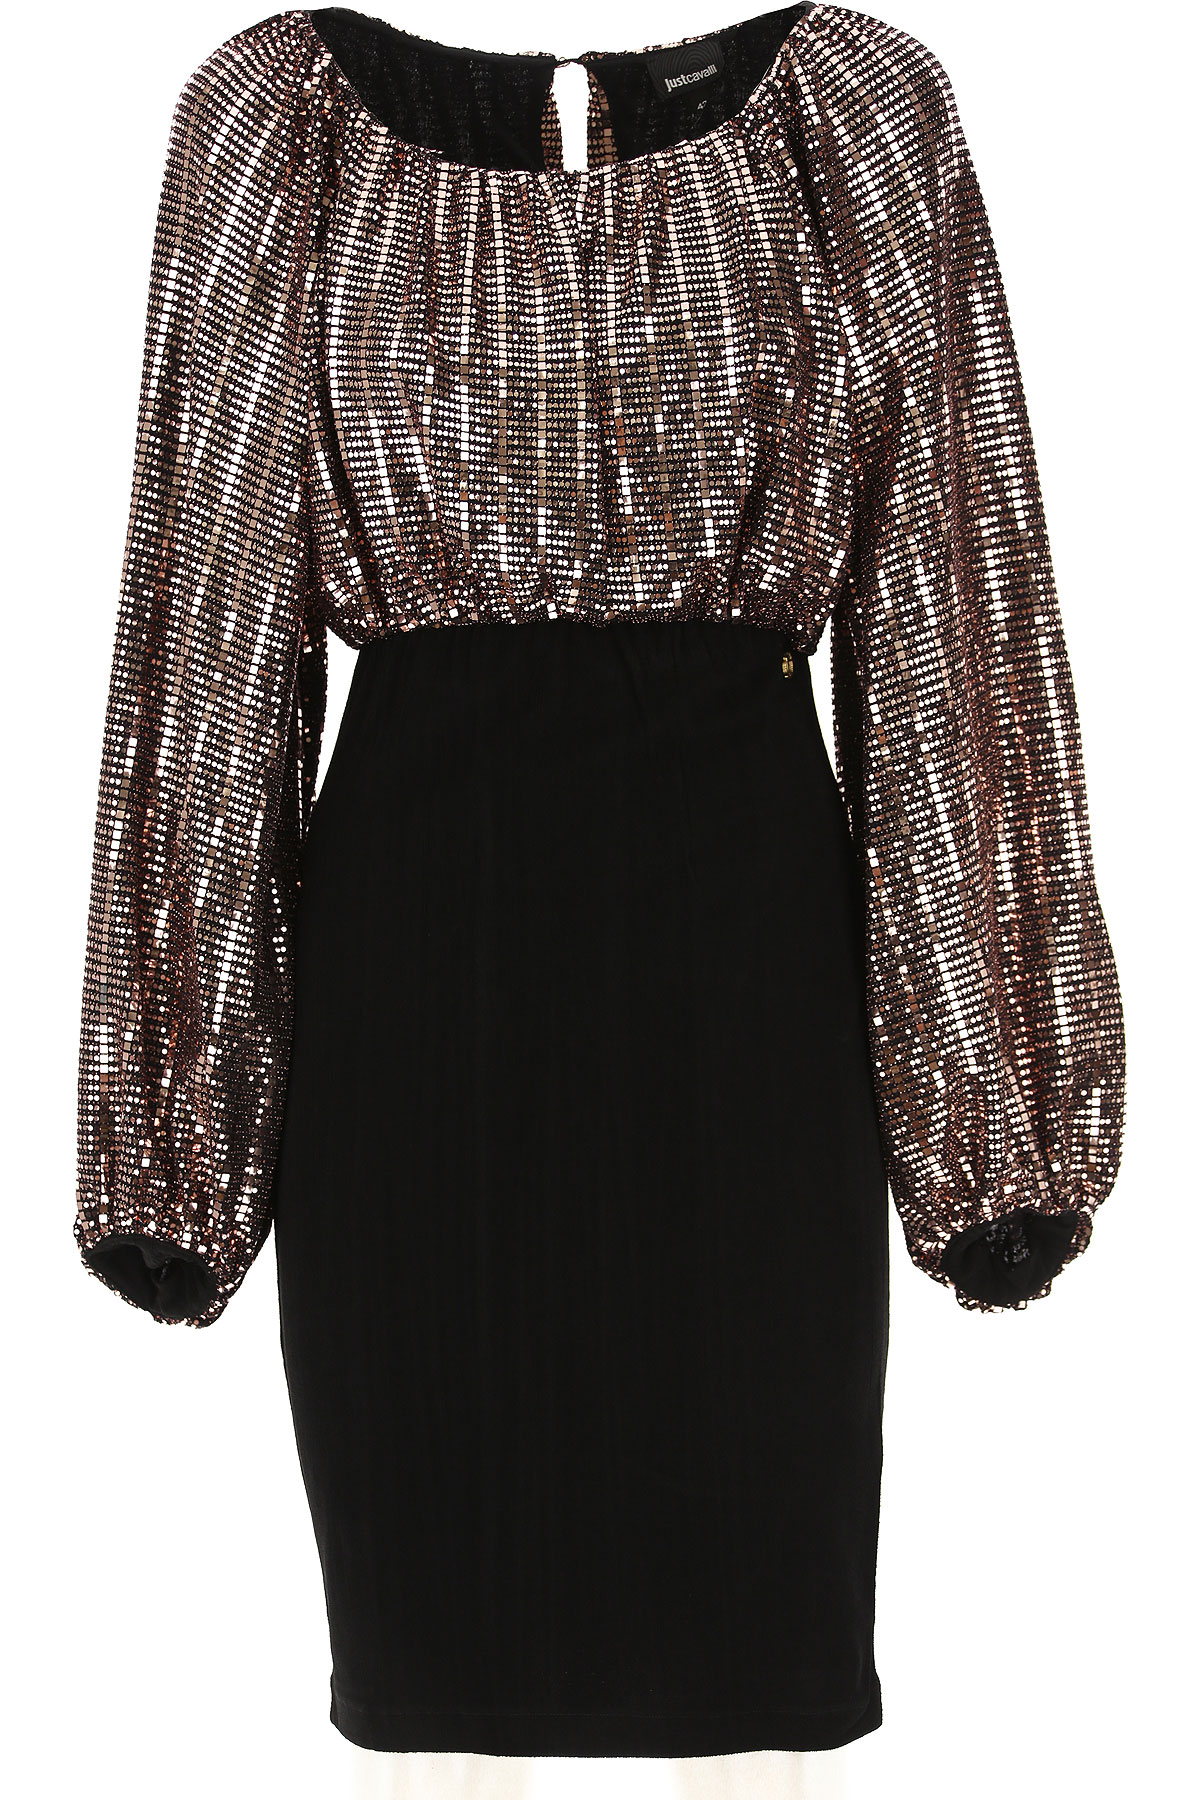 Roberto Cavalli Dress for Women, Evening Cocktail Party On Sale, Copper, polyamide, 2019, 4 6 8